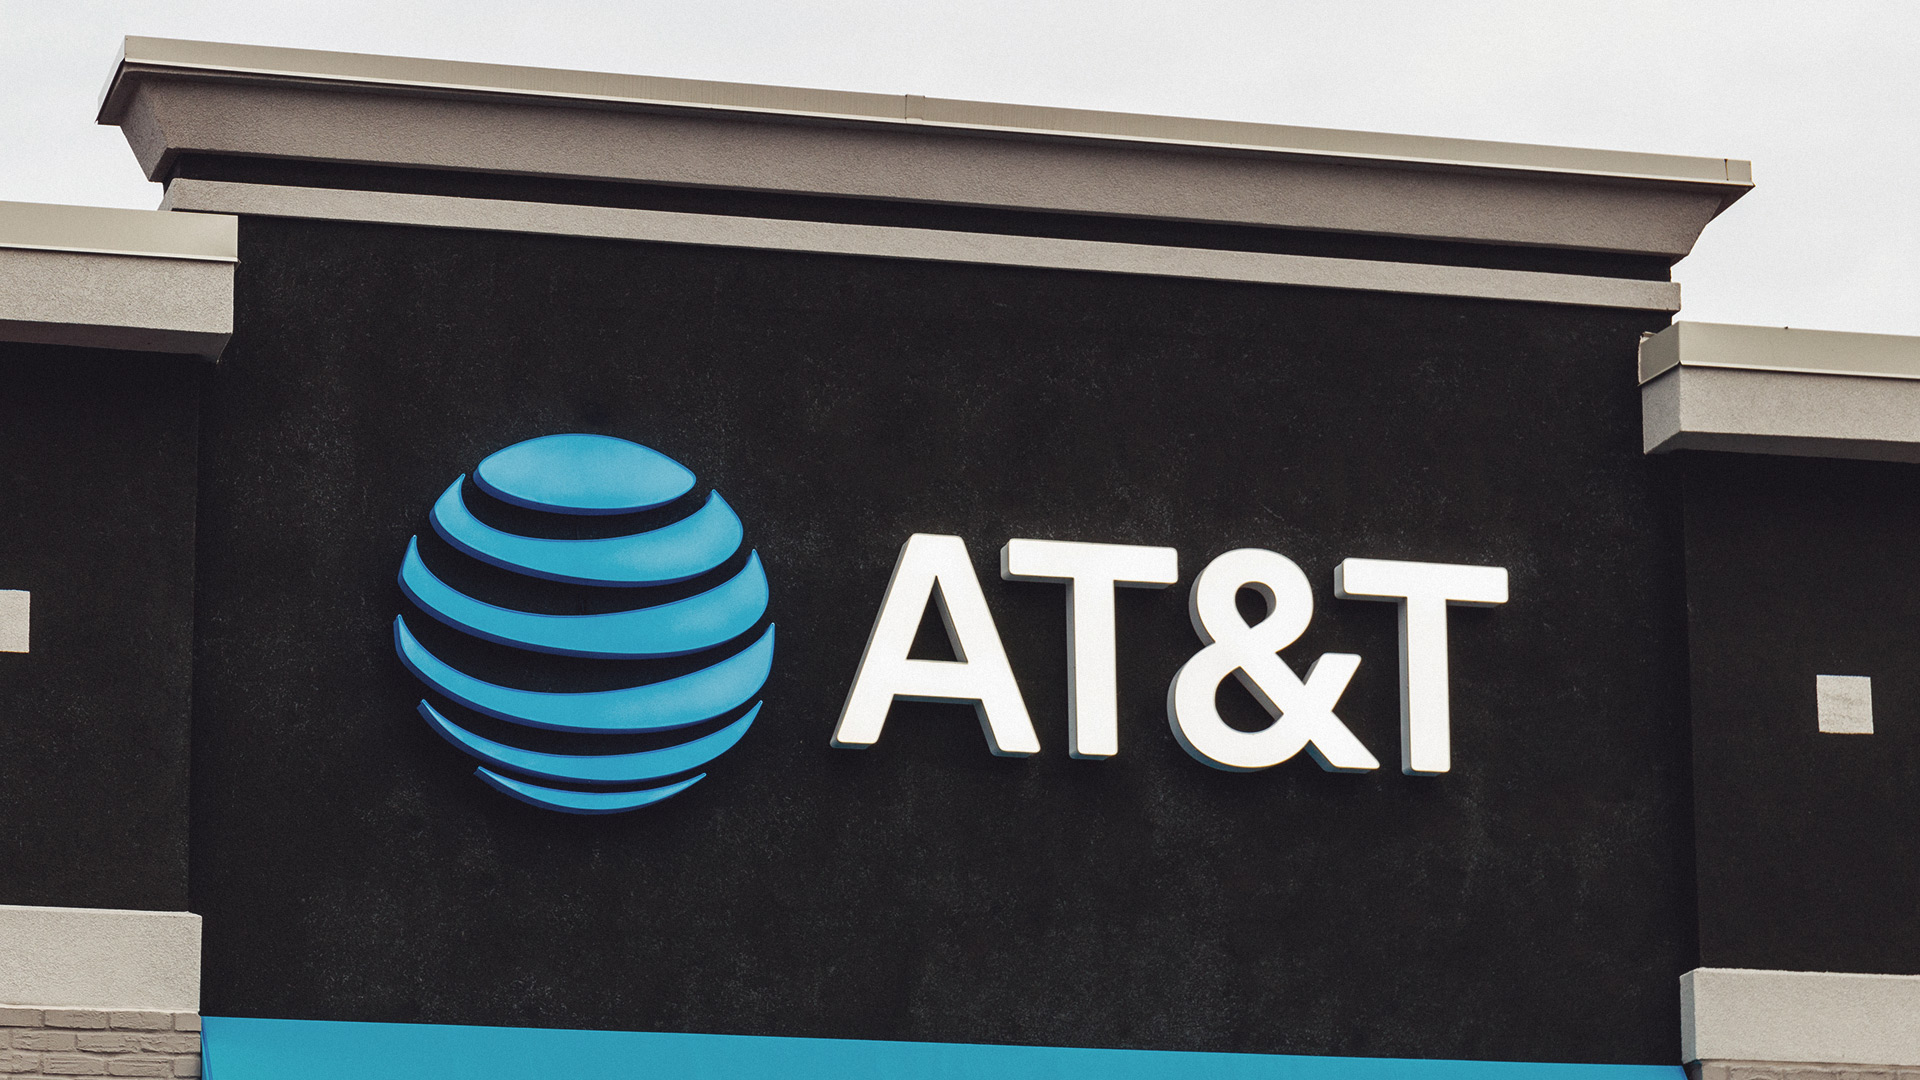 Court says AT&T SIM hack plaintiff's $24M crypto loss not result of security lapse, must amend suit - The Block